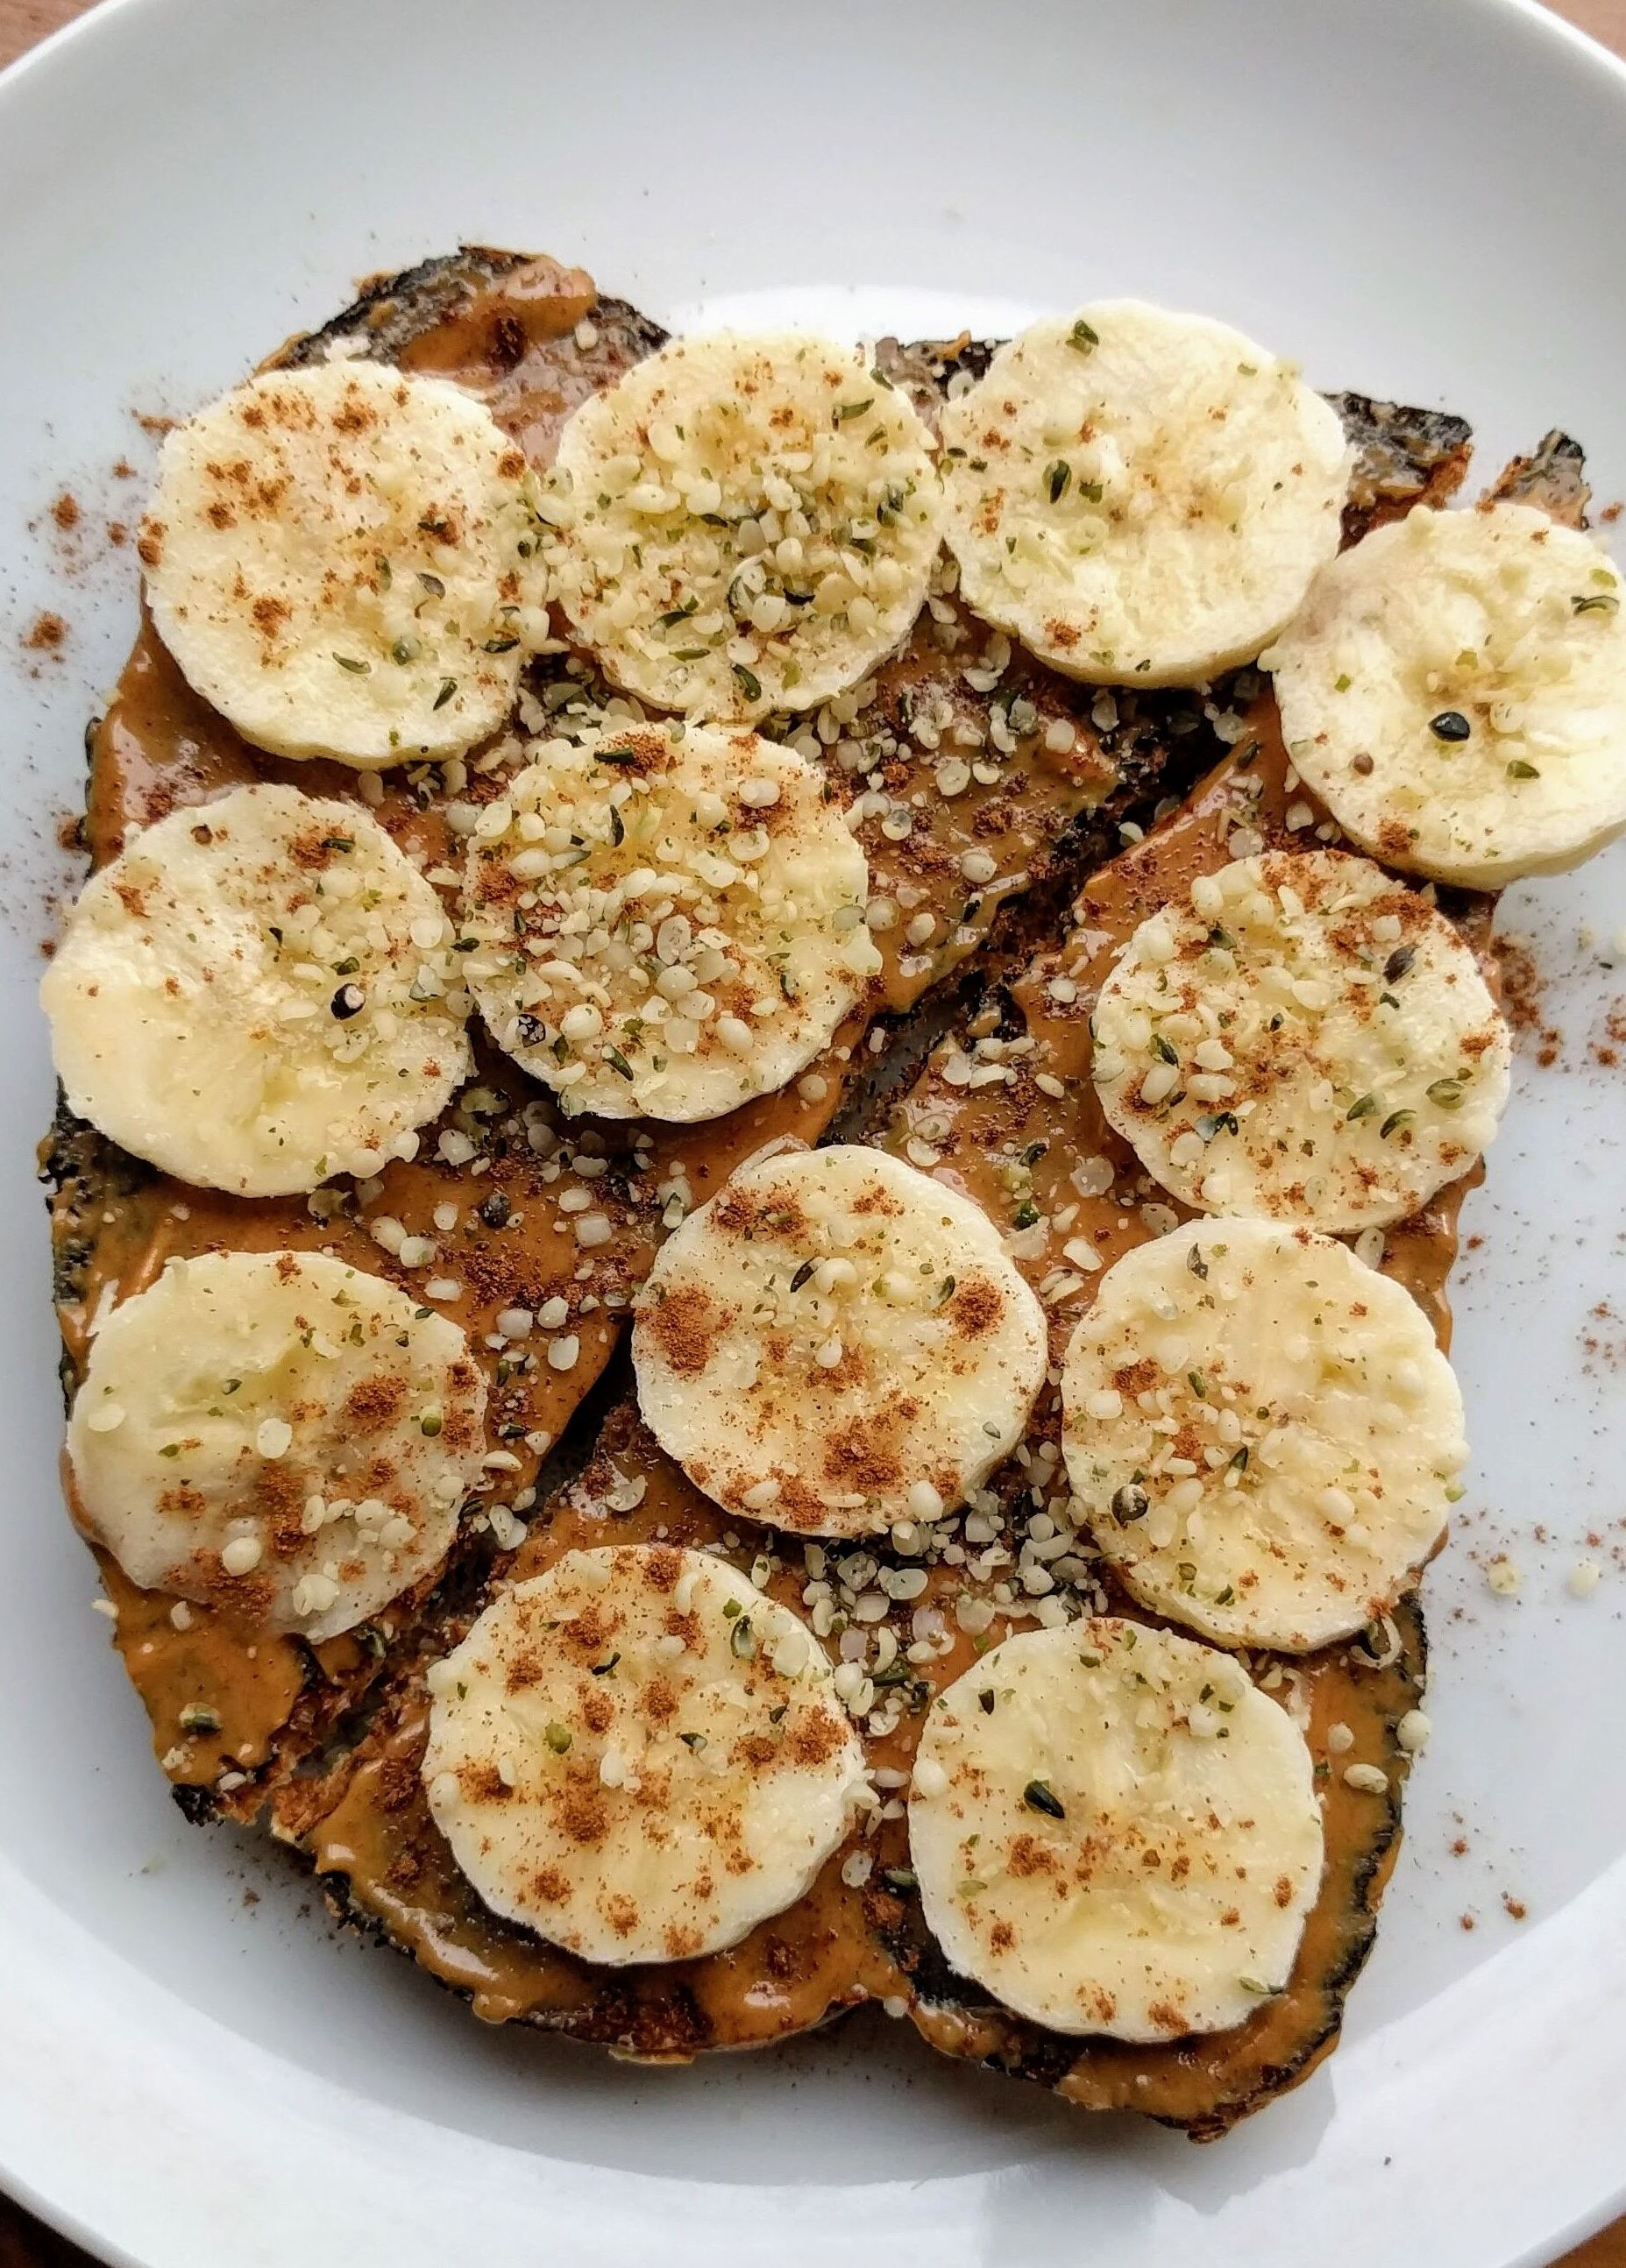 Nut Butter Banana Toast With Hemp Seeds By Cookinghealthy Co Quick Easy Recipe The Feedfeed